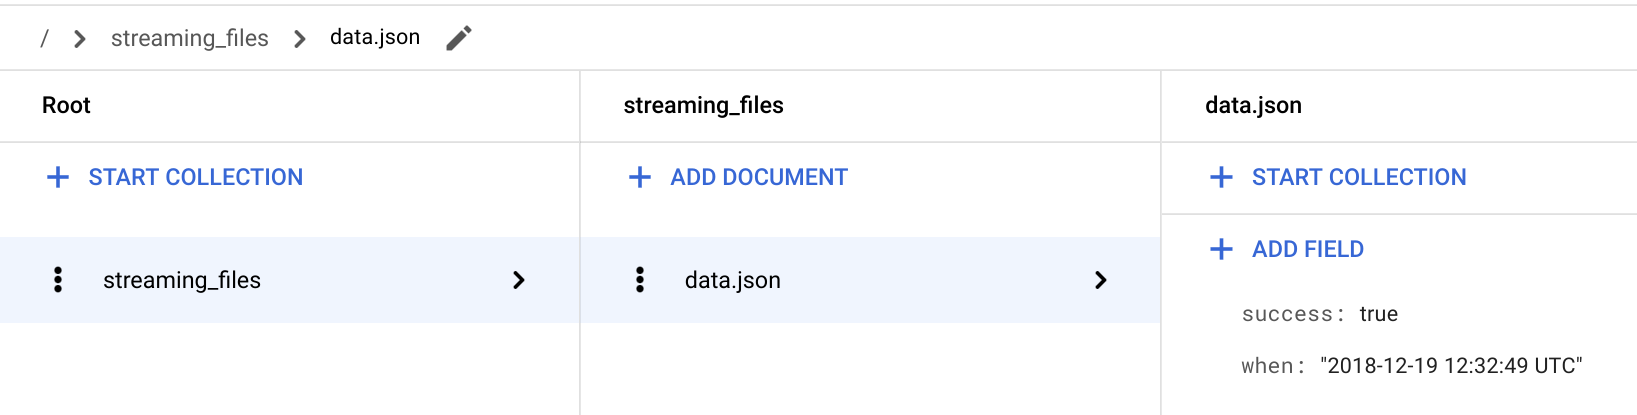 Verify the `streaming` function is storing the file's success status